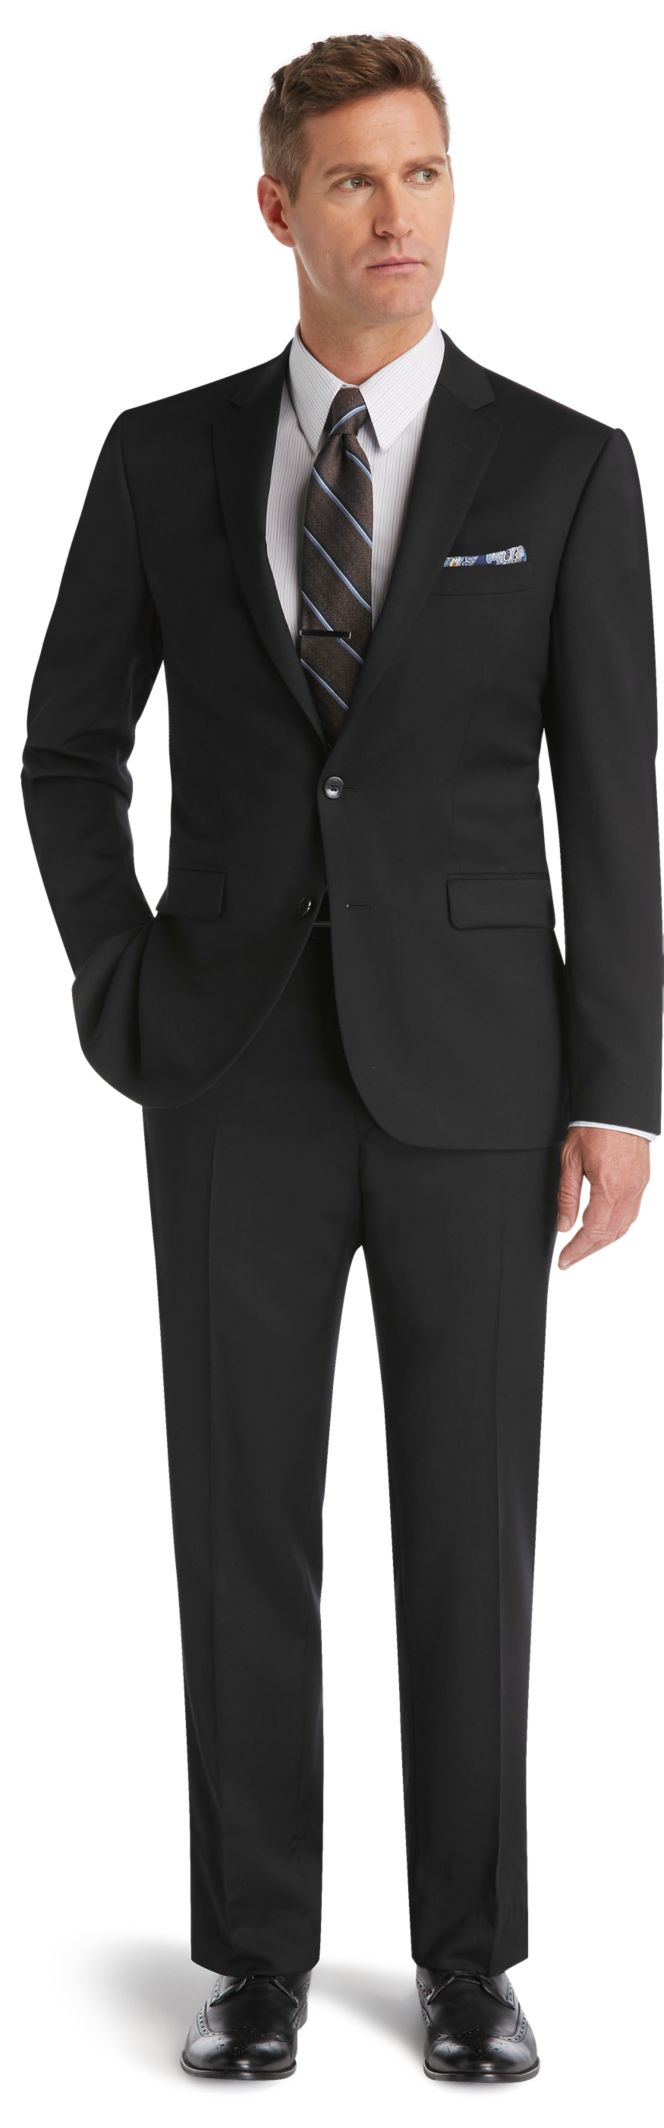 Traveler Collection Slim Fit Suit - Traveler Suits | Jos A Bank